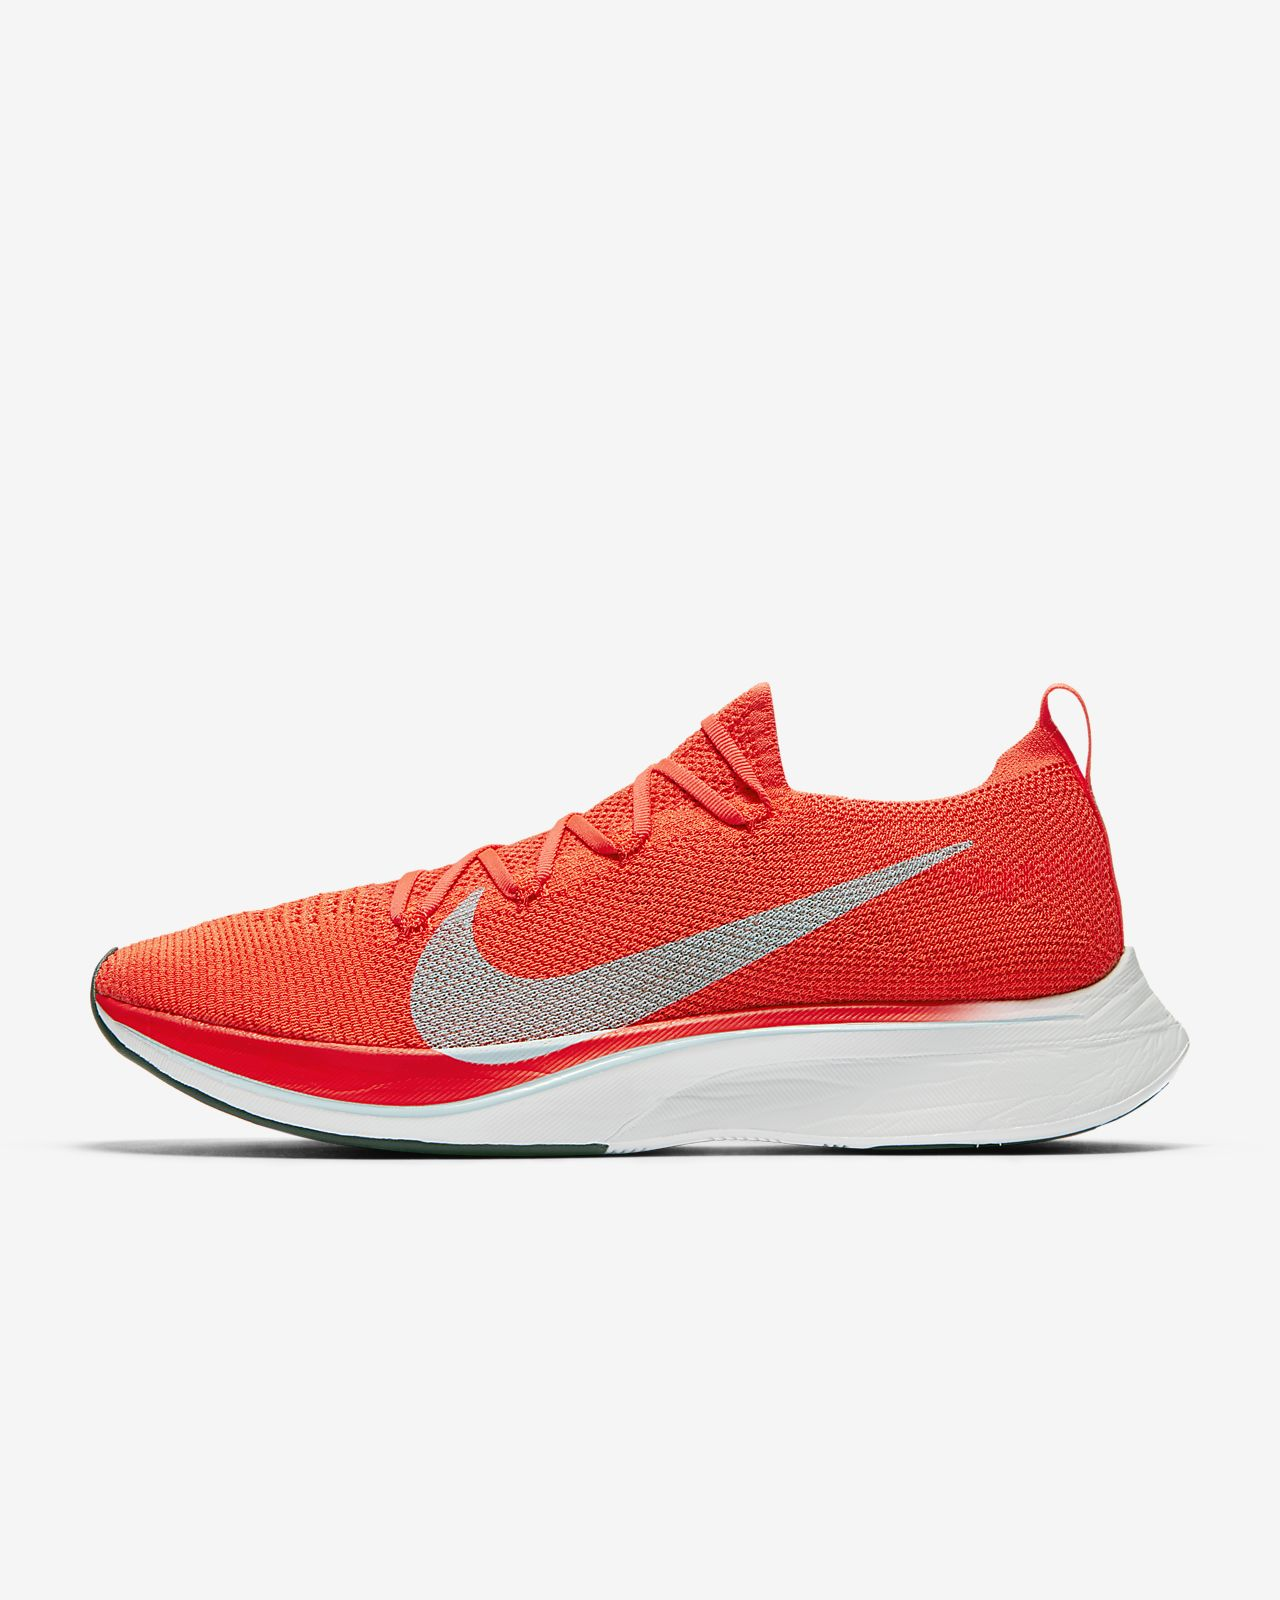 professional sale buying cheap in stock Chaussure de running Nike Vaporfly 4% Flyknit